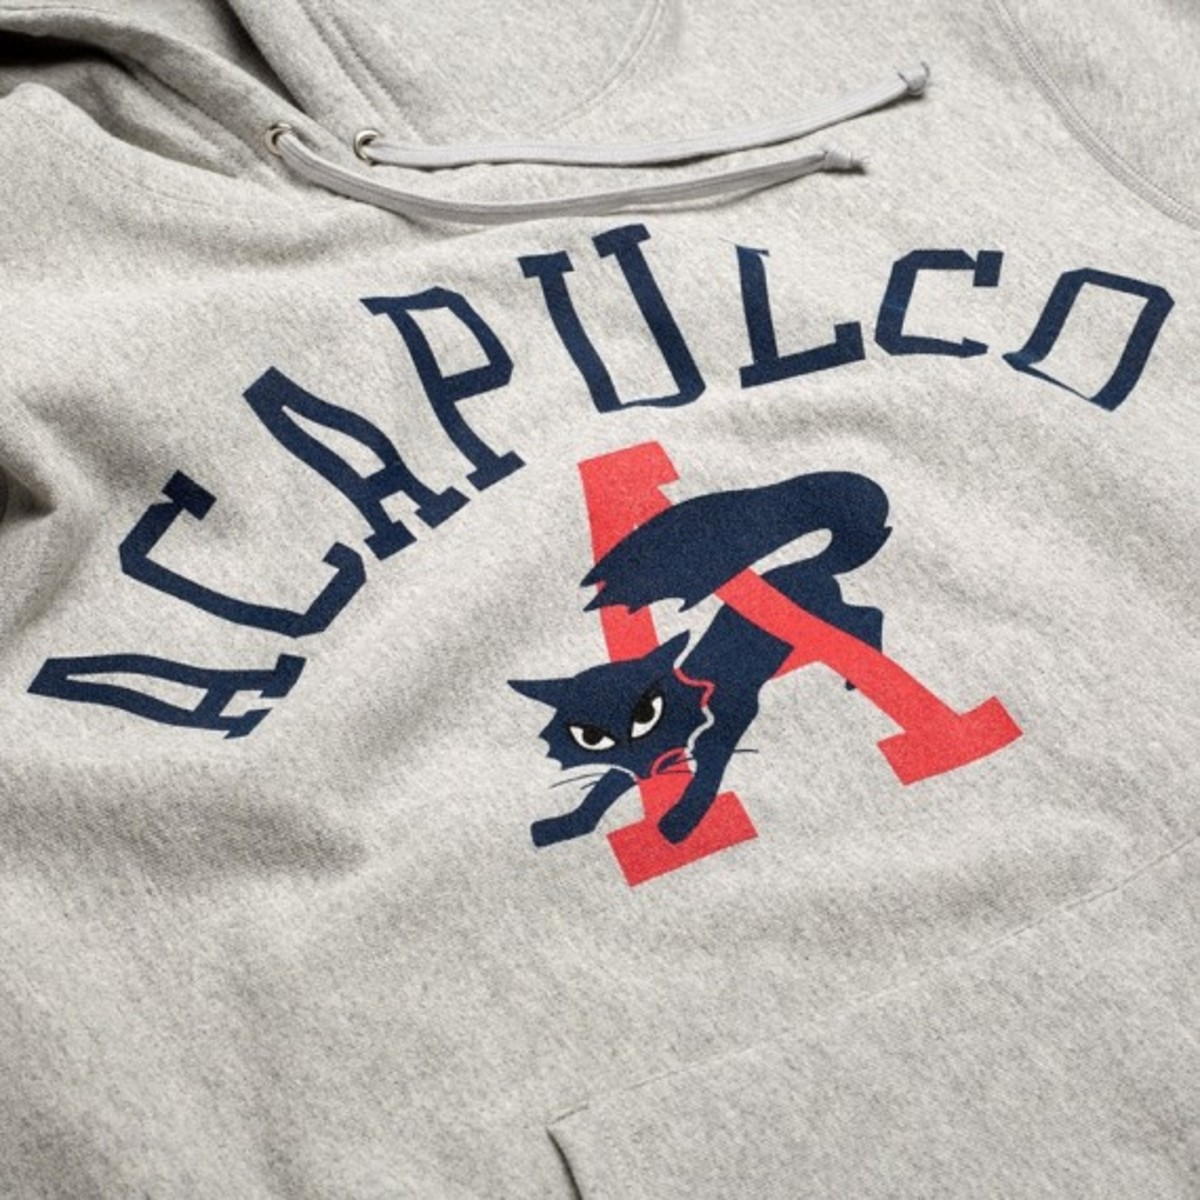 acapulco-gold-spring-2014-collection-delivery-1-26